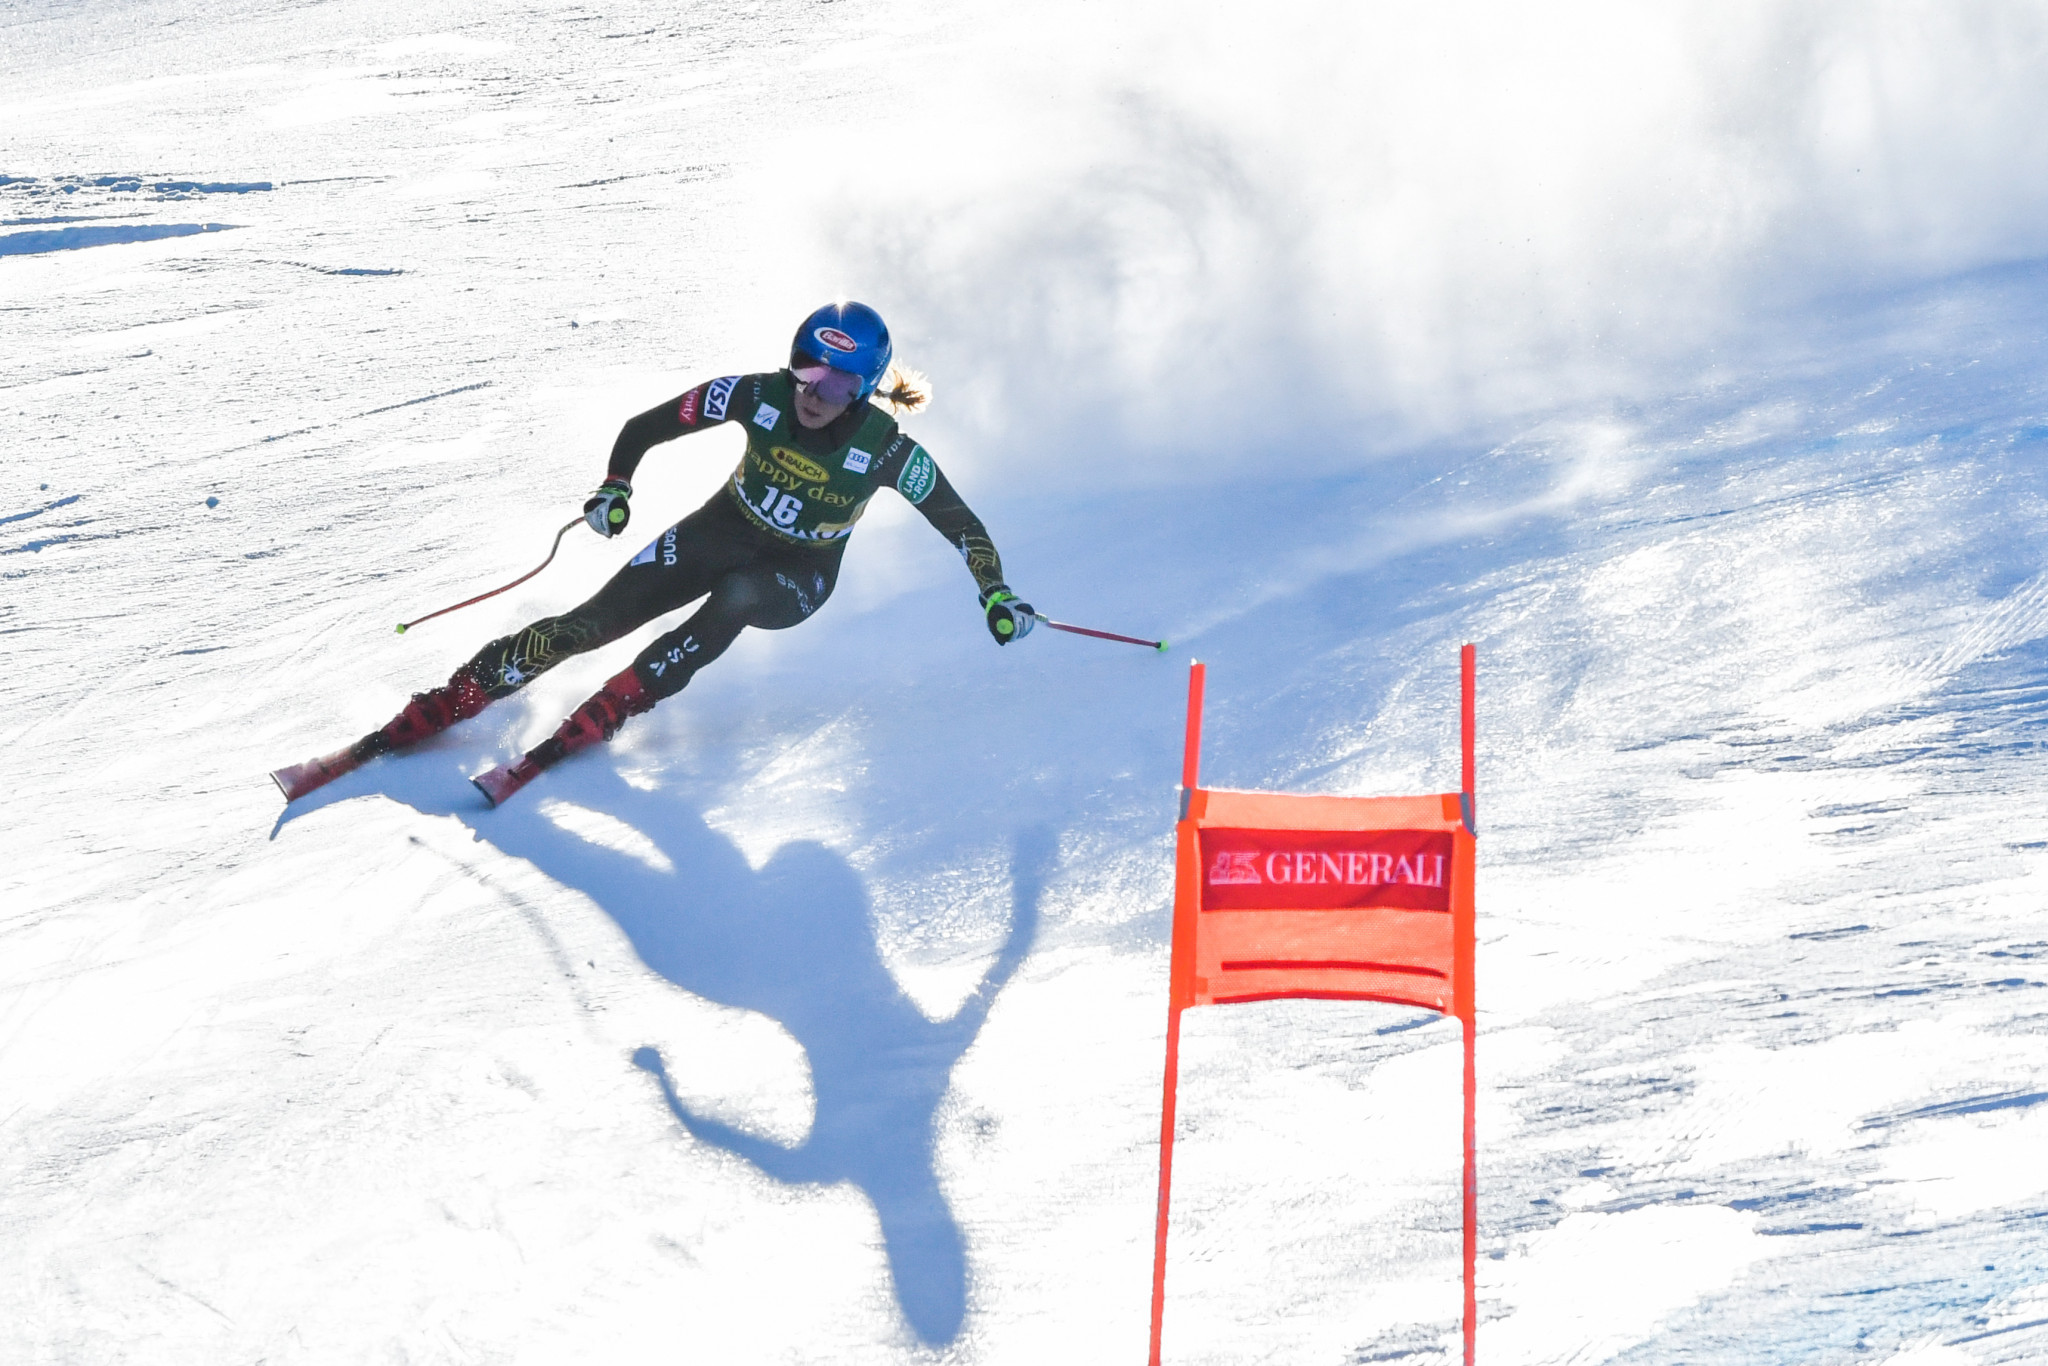 Mikaela Shiffrin of the United States earned only the second downhill World Cup victory of her career ©Getty Images